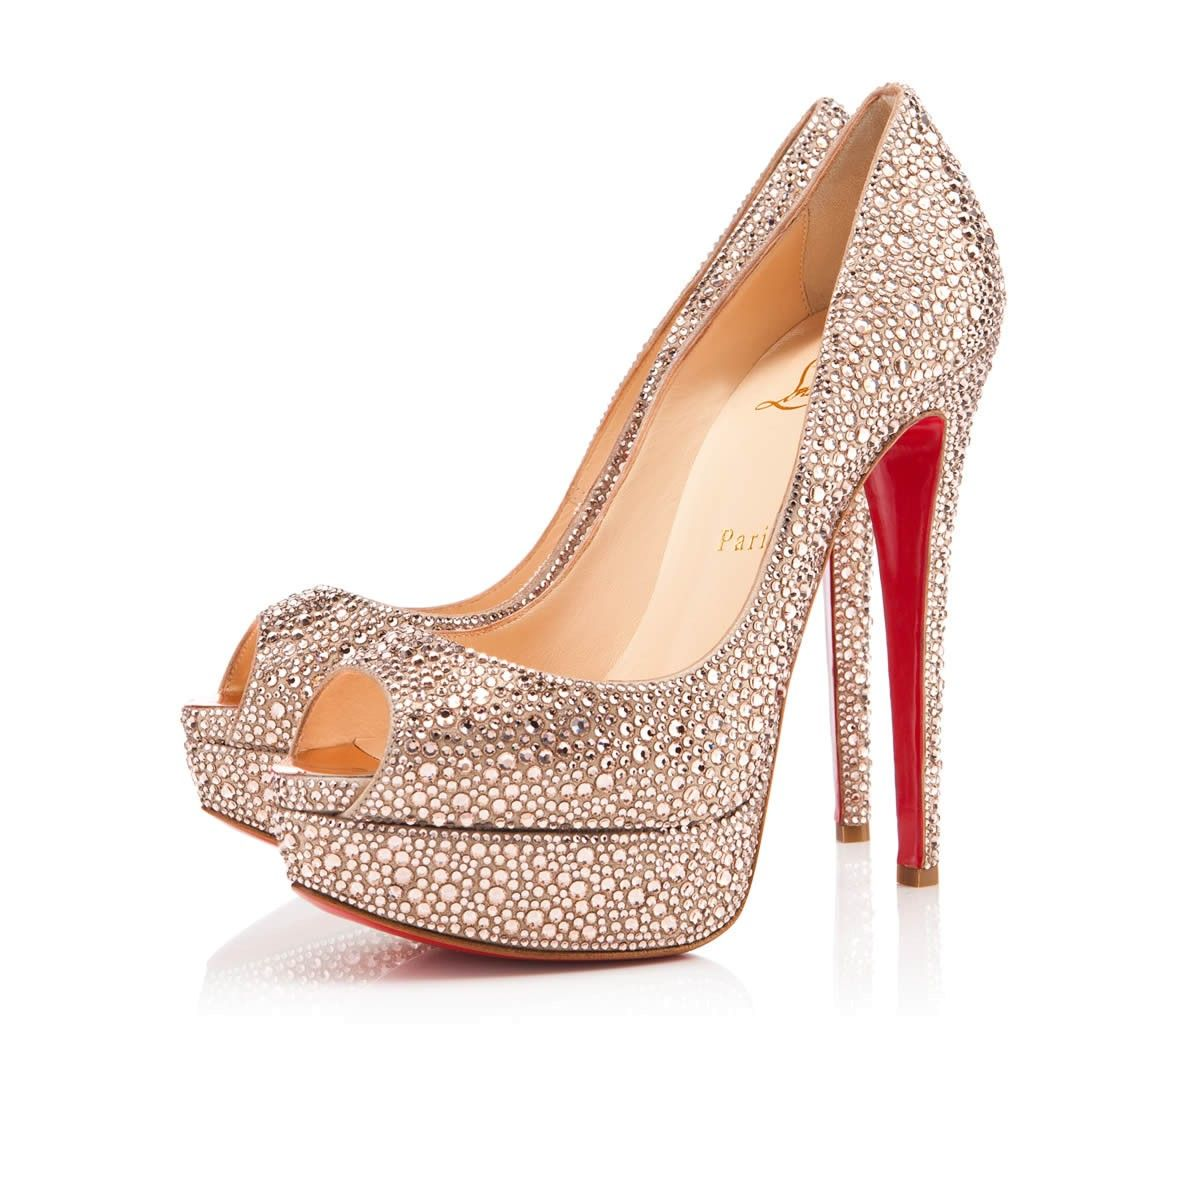 9b61c928b791d Shoes - Lady Peep Strass - Christian Louboutin | Christian louboutin ...